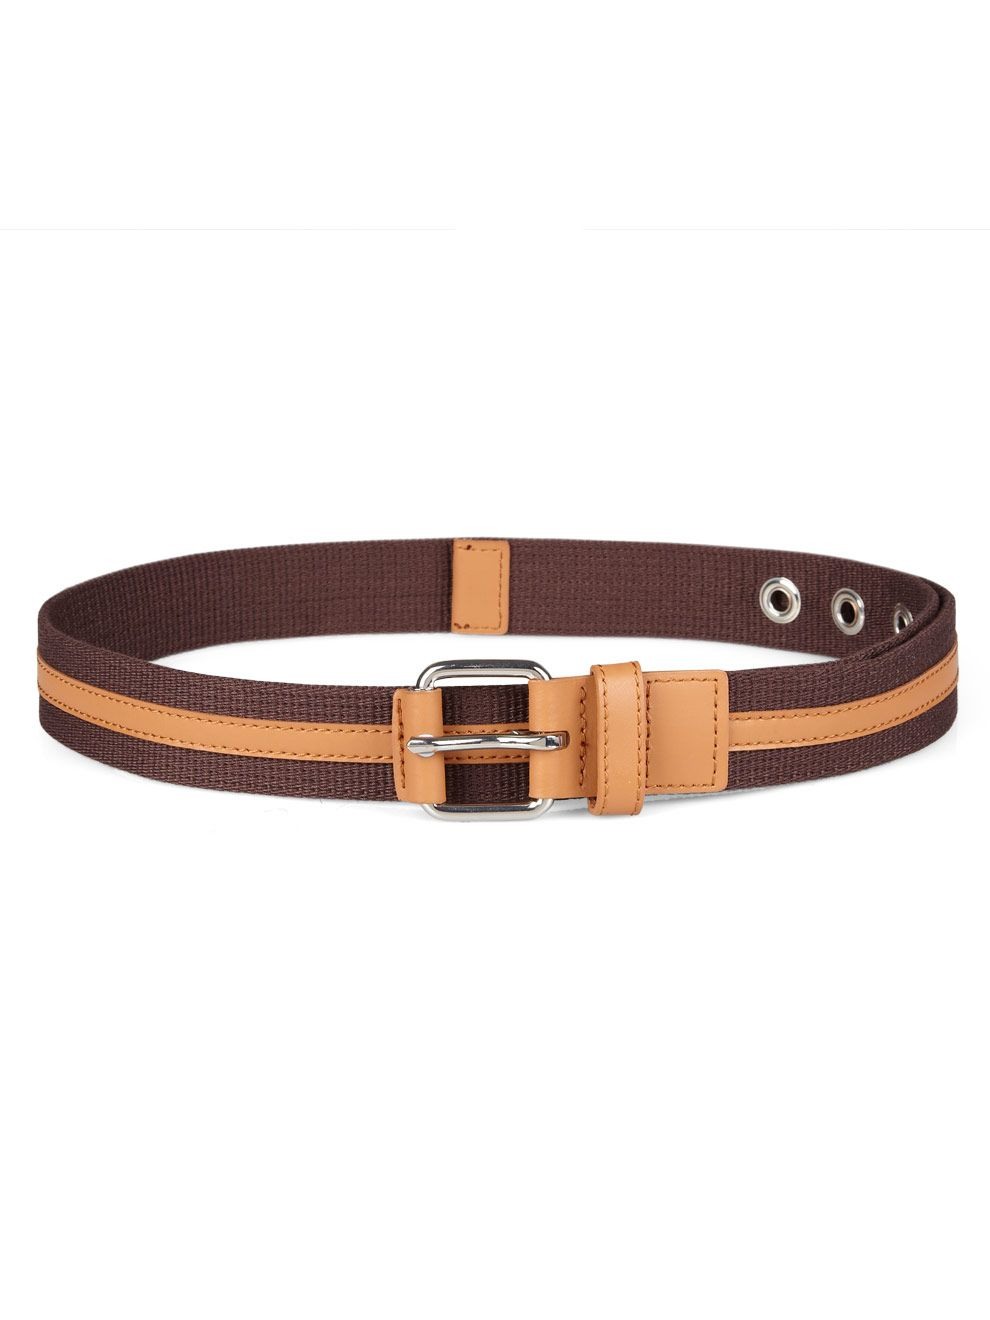 Calvert  leather and canvas woven belt